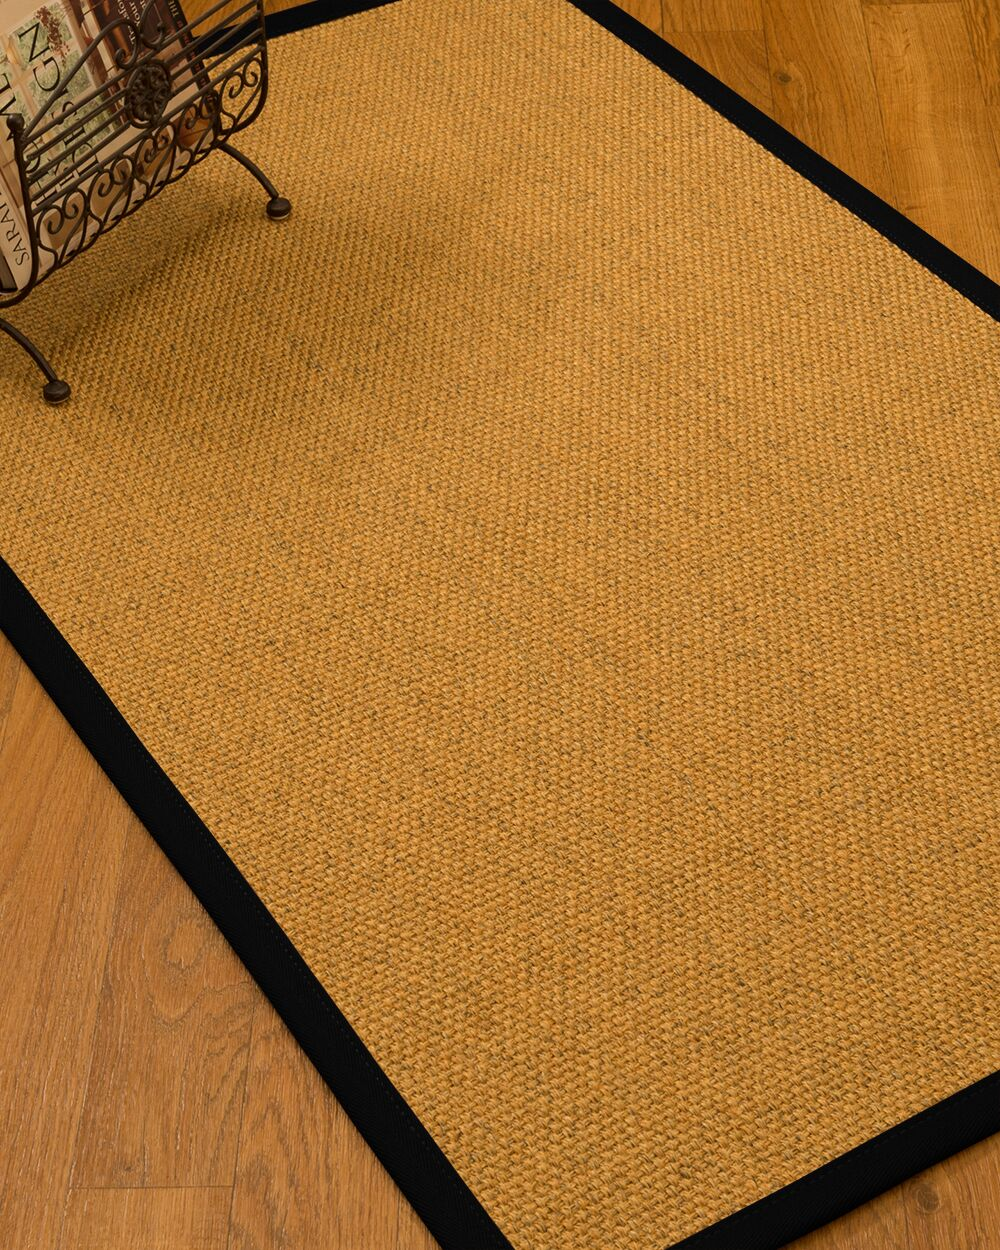 Pritzker Handmade Jute/Sisal Beige Indoor Area Rug Rug Size: Rectangle 8' x 10'